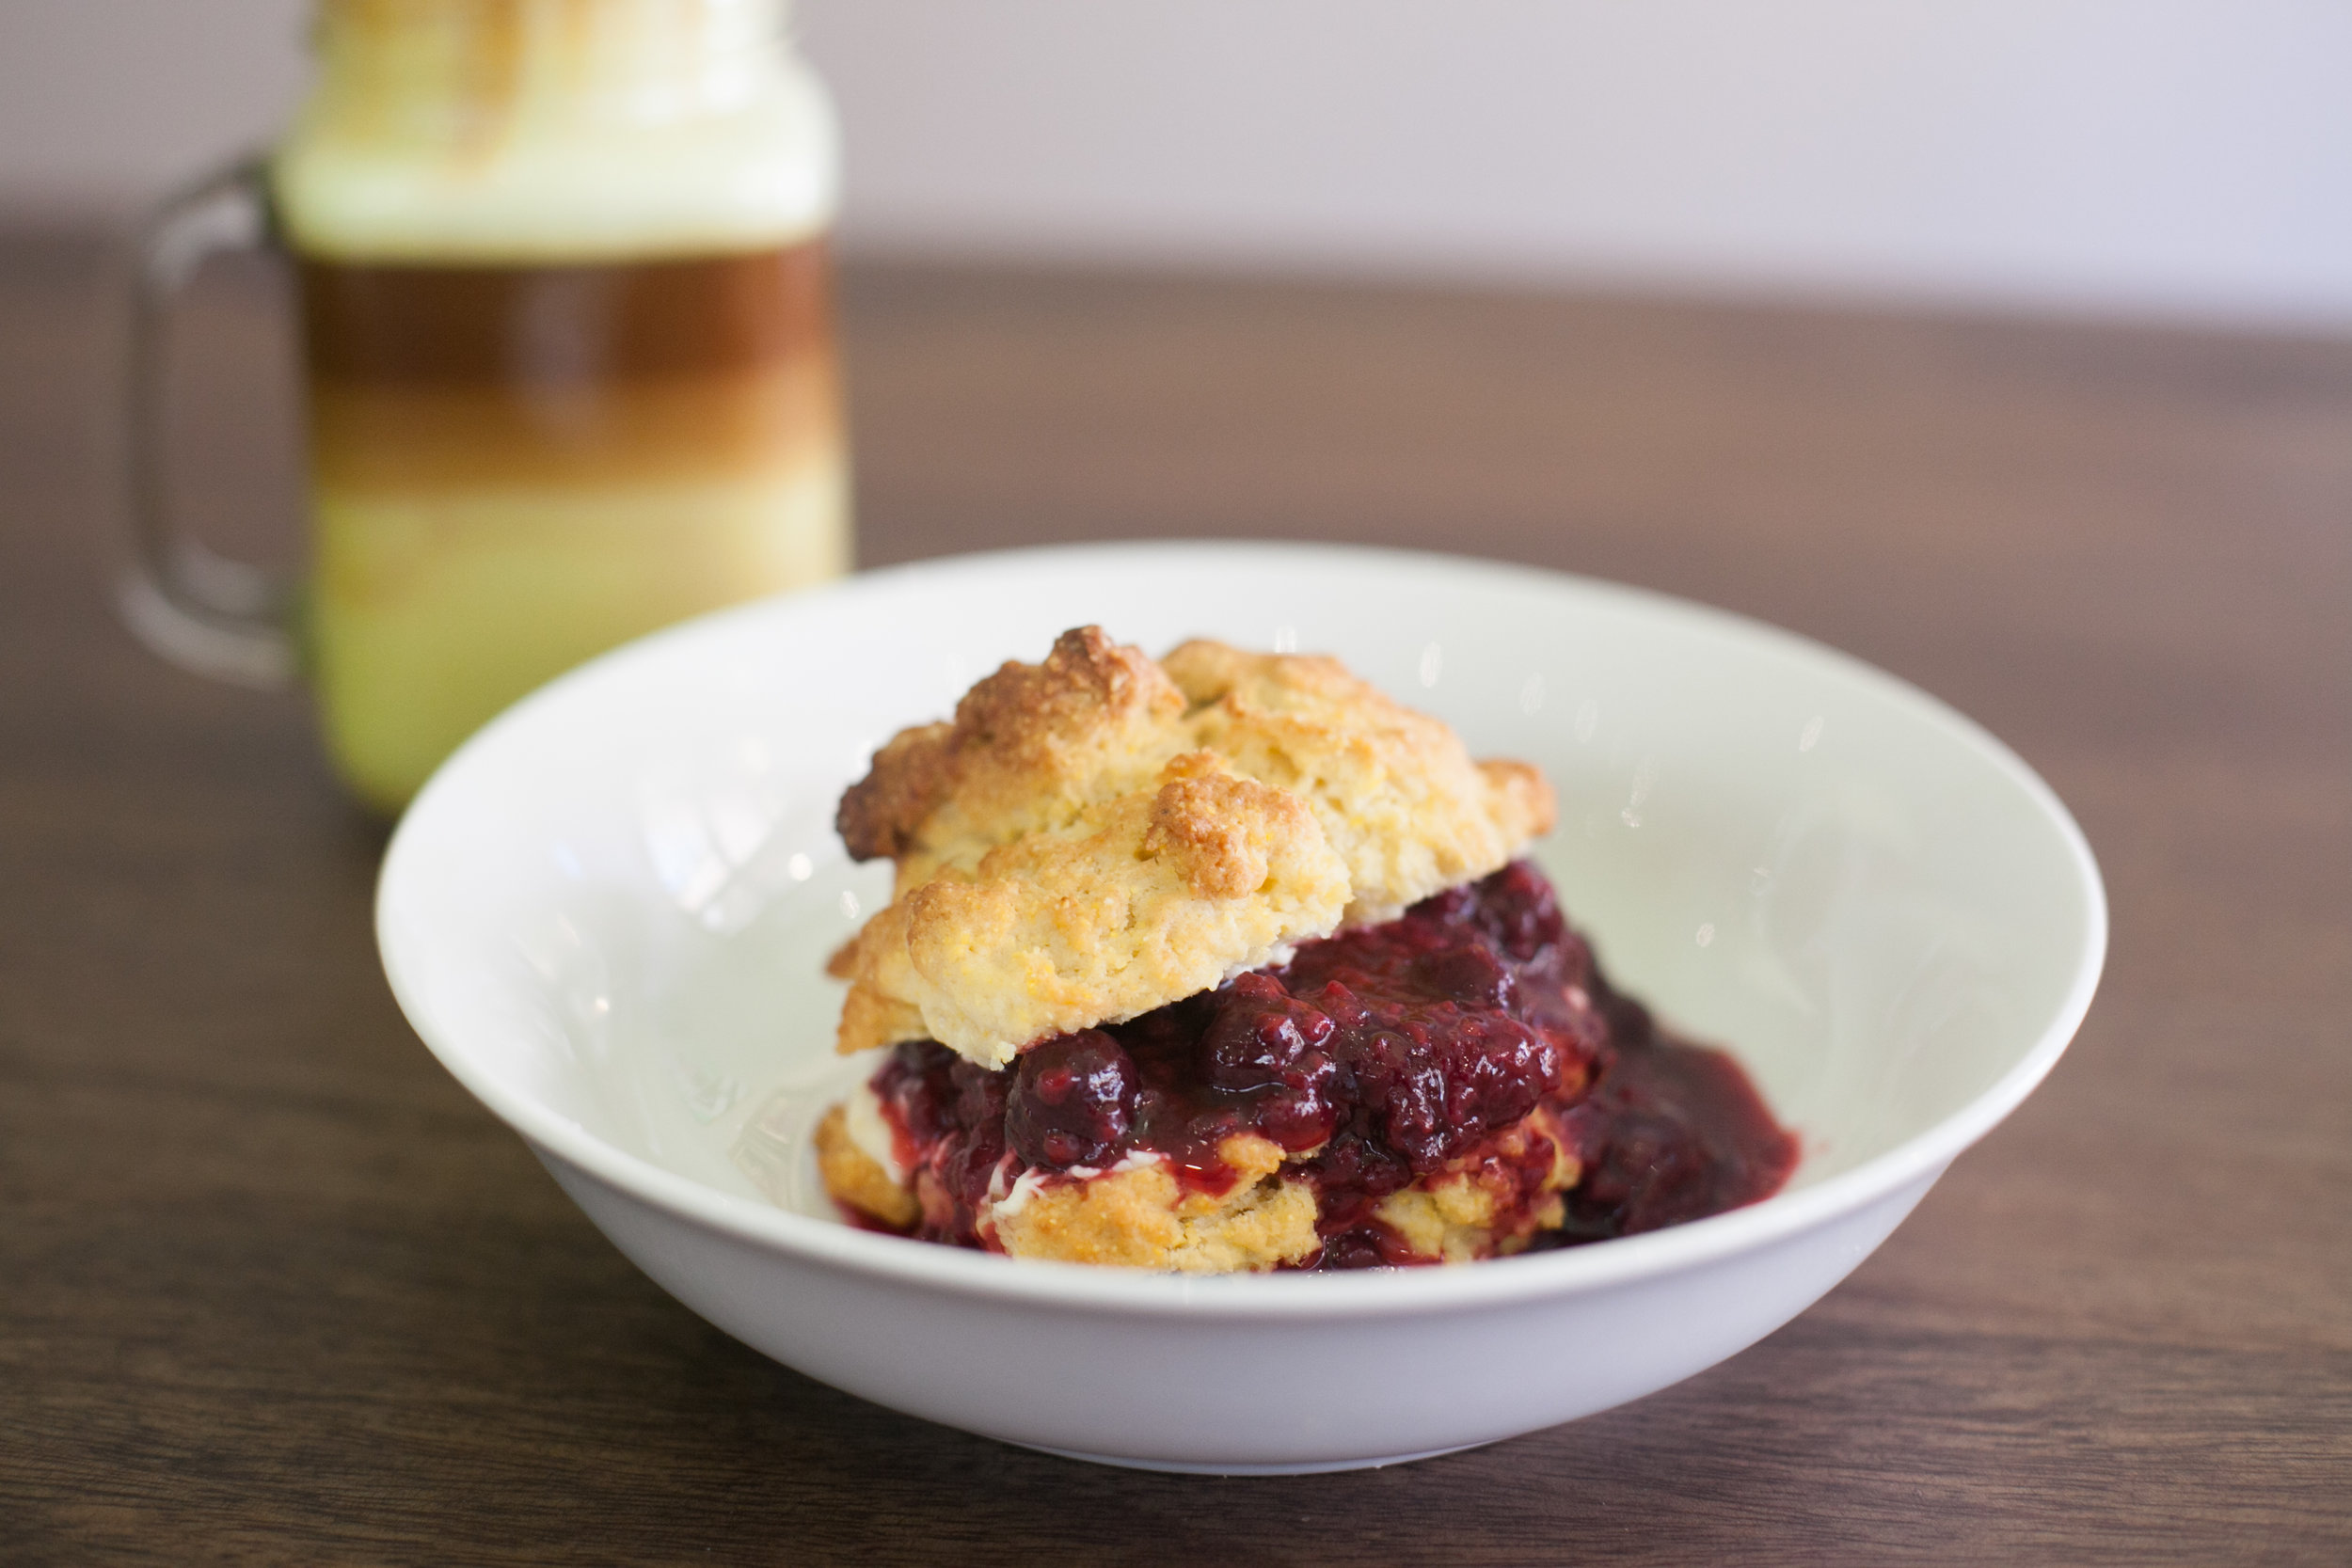 Cherry Scone with Berry Compote.  Photo by Tina Harle